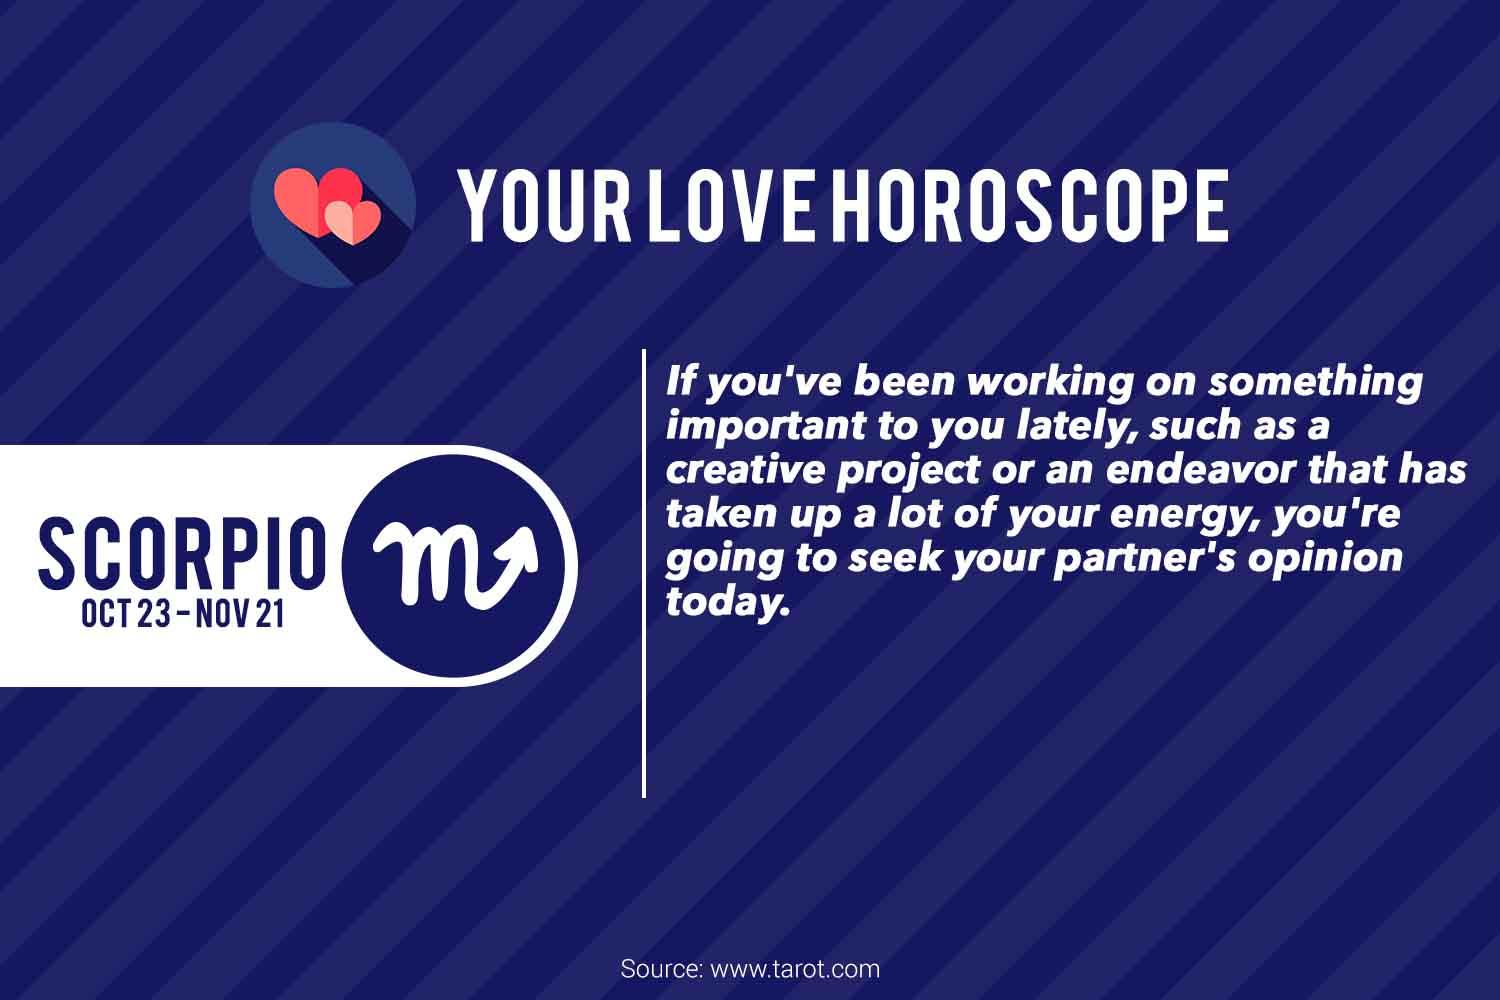 scorpio-love-horoscope-image-for-inuth